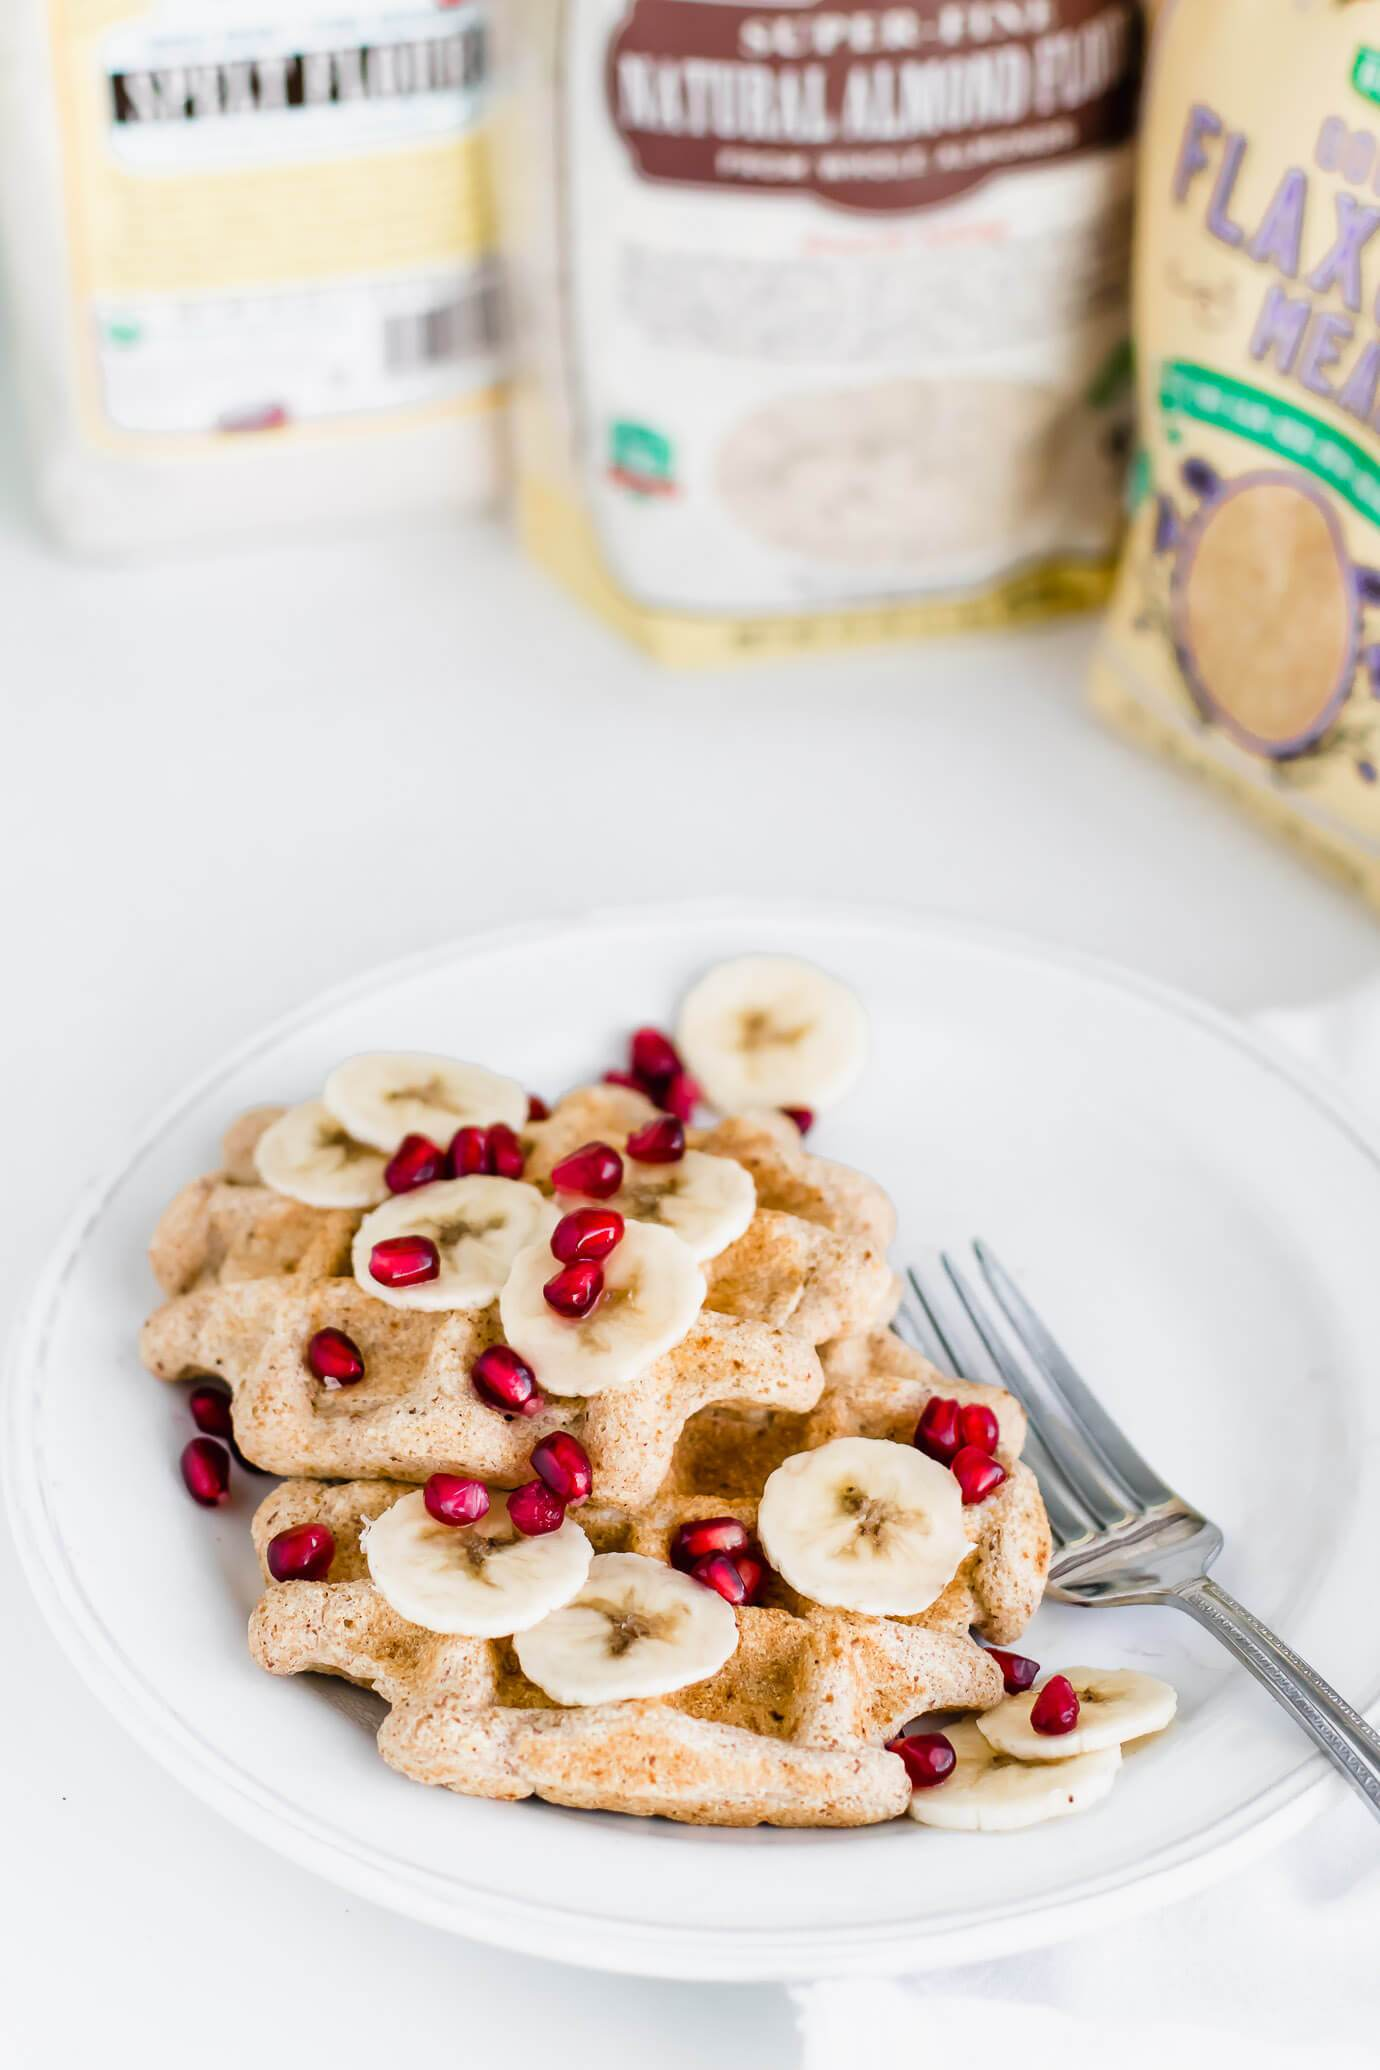 Light and crispy vegan waffles made with a combination of spelt flour, almond flour, and ground flax meal. Lightly sweetened with just a touch date sugar or coconut sugar.